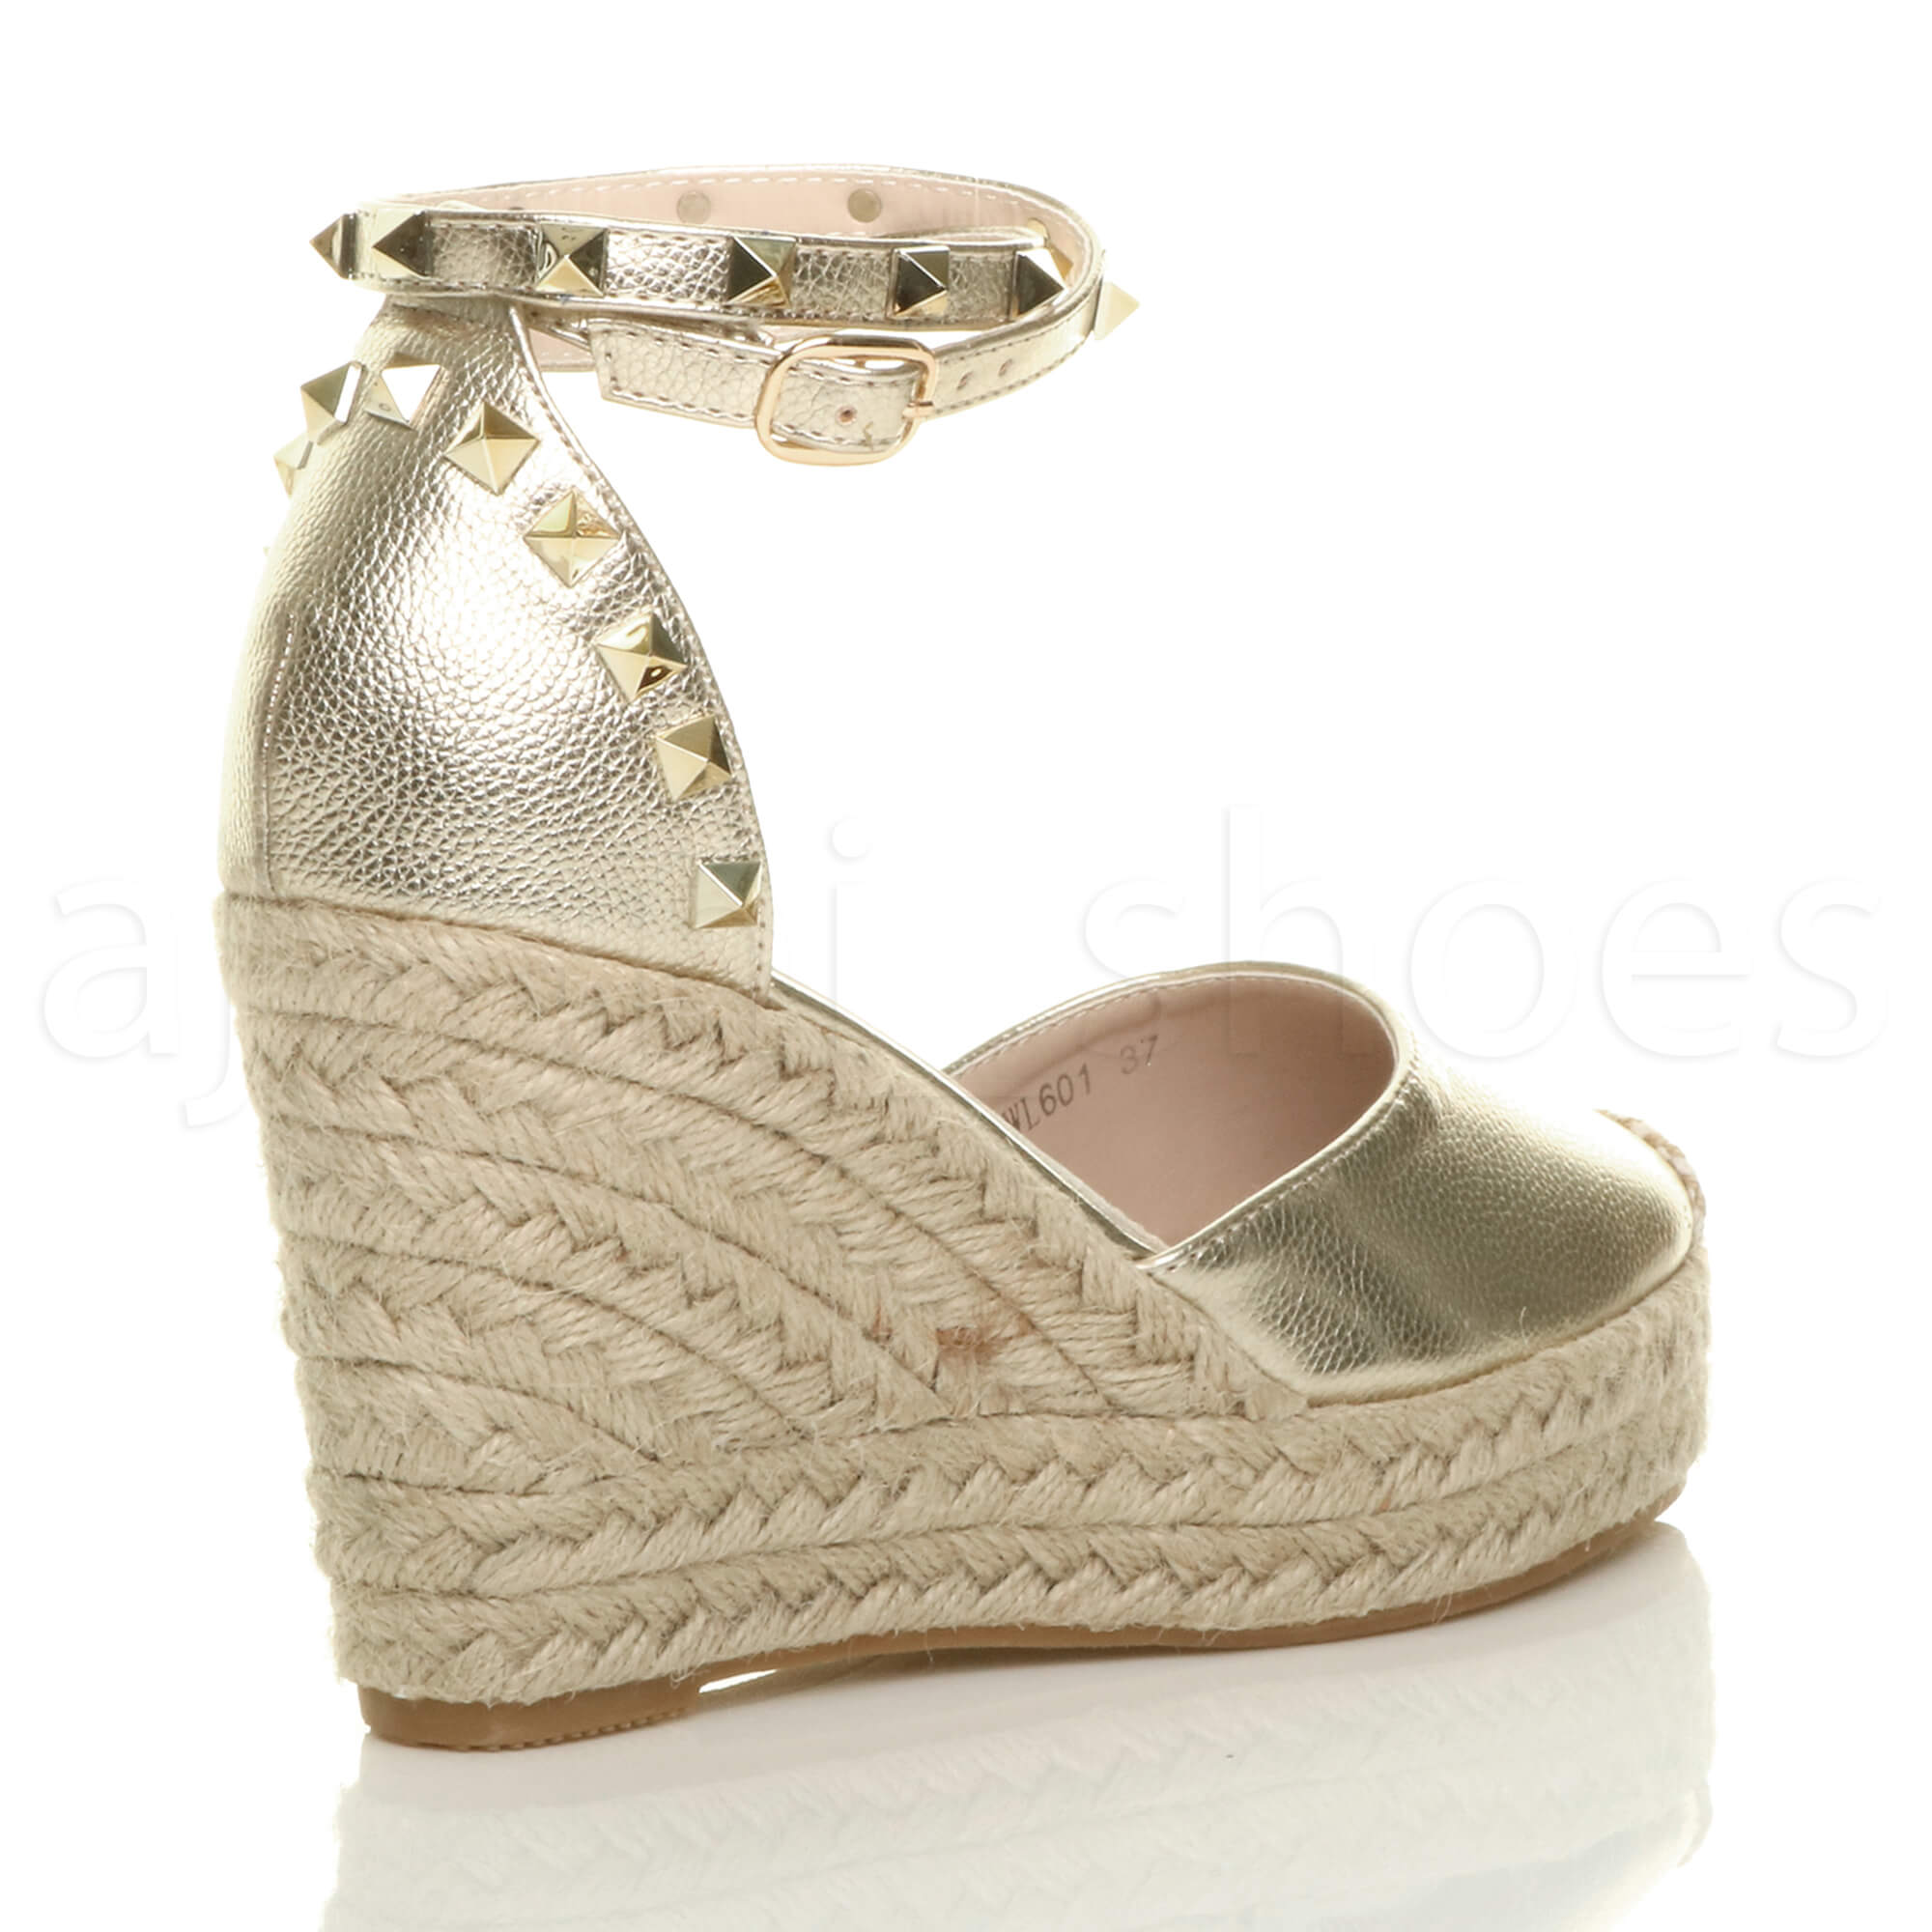 398d9df4725 Details about WOMENS LADIES HIGH WEDGE HEEL STUDDED ANKLE STRAP ESPADRILLES  SHOES SANDALS SIZE